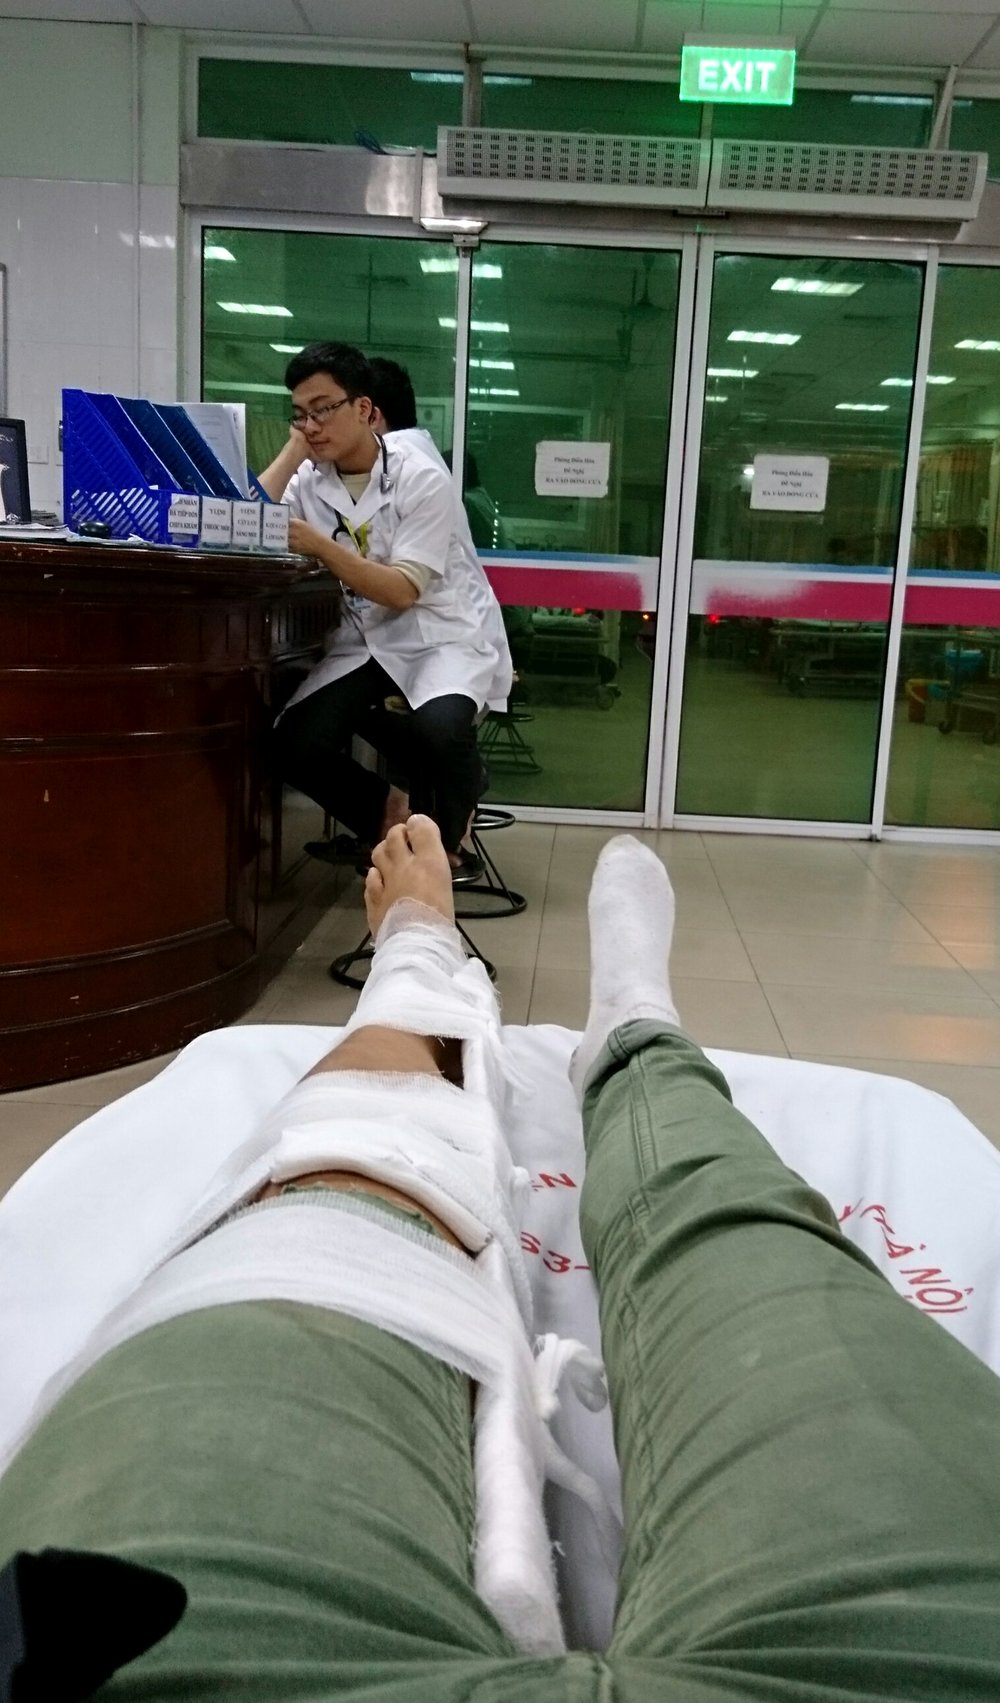 E.R. in Hanoi, Vietnam. One of the worst days of 2016